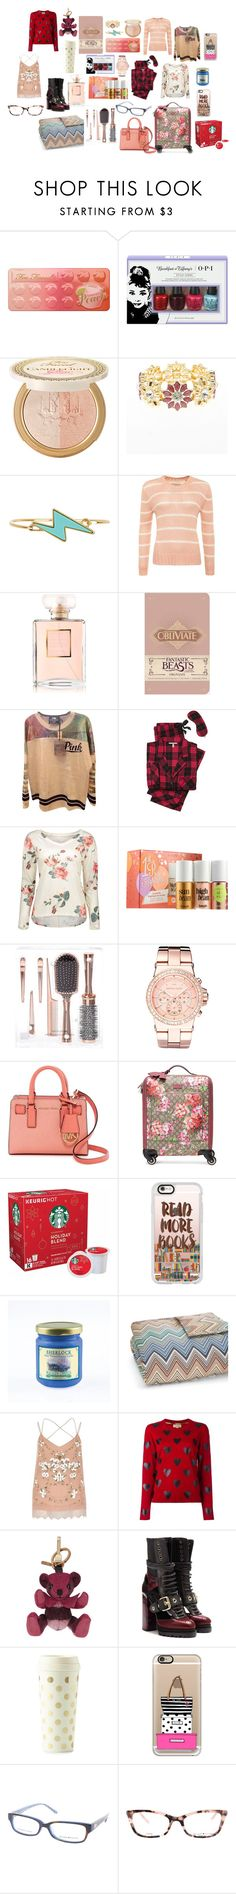 """""""Dream Closet:Christmas Haul"""" by stephaniefb ❤ liked on Polyvore featuring Too Faced Cosmetics, OPI, Charlotte Russe, Marc by Marc Jacobs, Superdry, Chanel, Victoria's Secret, Benefit, Michael Kors and MICHAEL Michael Kors"""